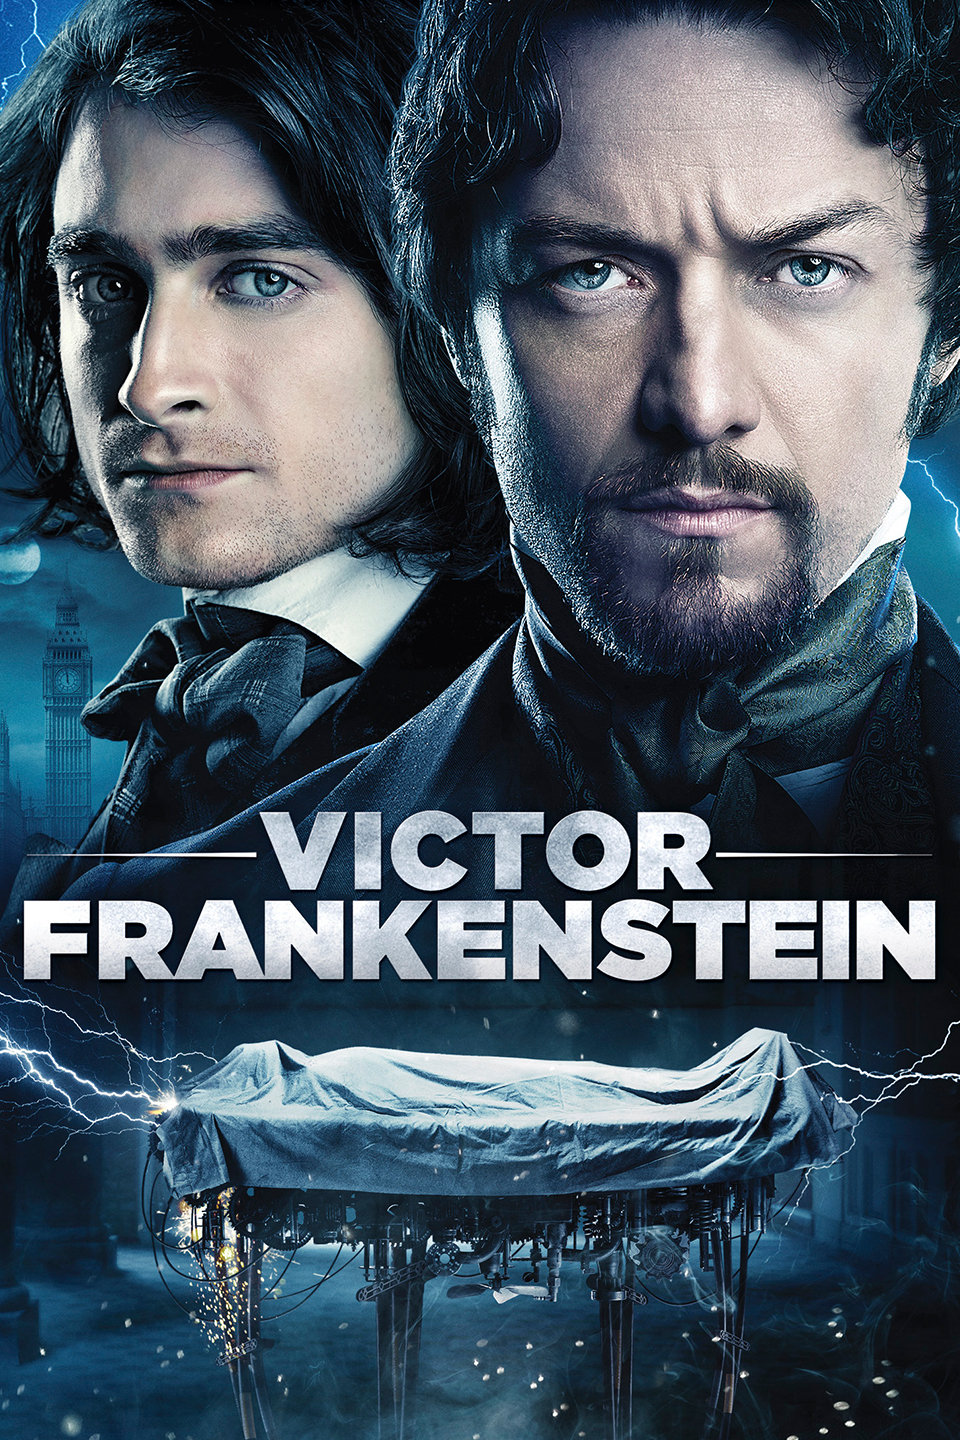 Victor-Frankenstein-960x1440-Portrate